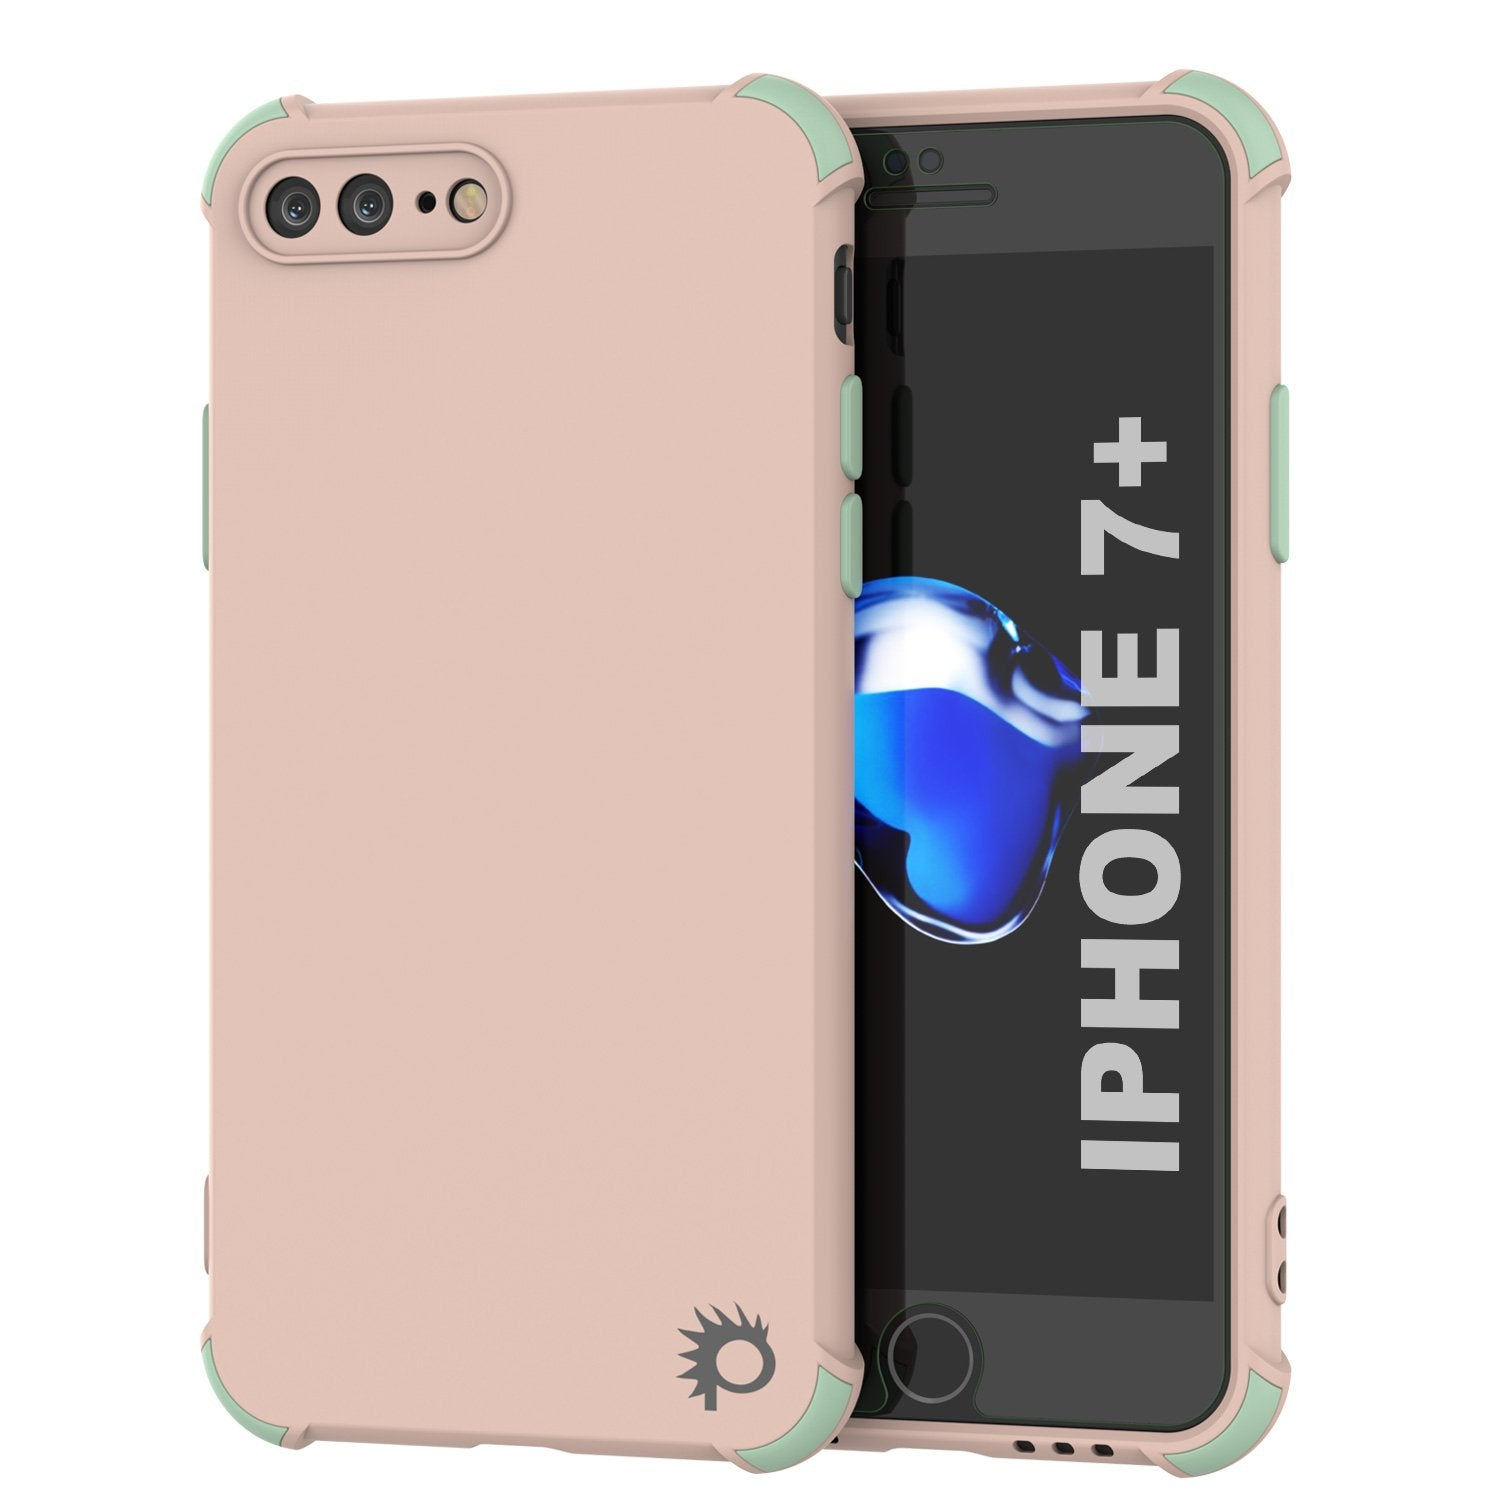 Punkcase Protective & Lightweight TPU Case [Sunshine Series] for iPhone 7+ Plus [Pink]